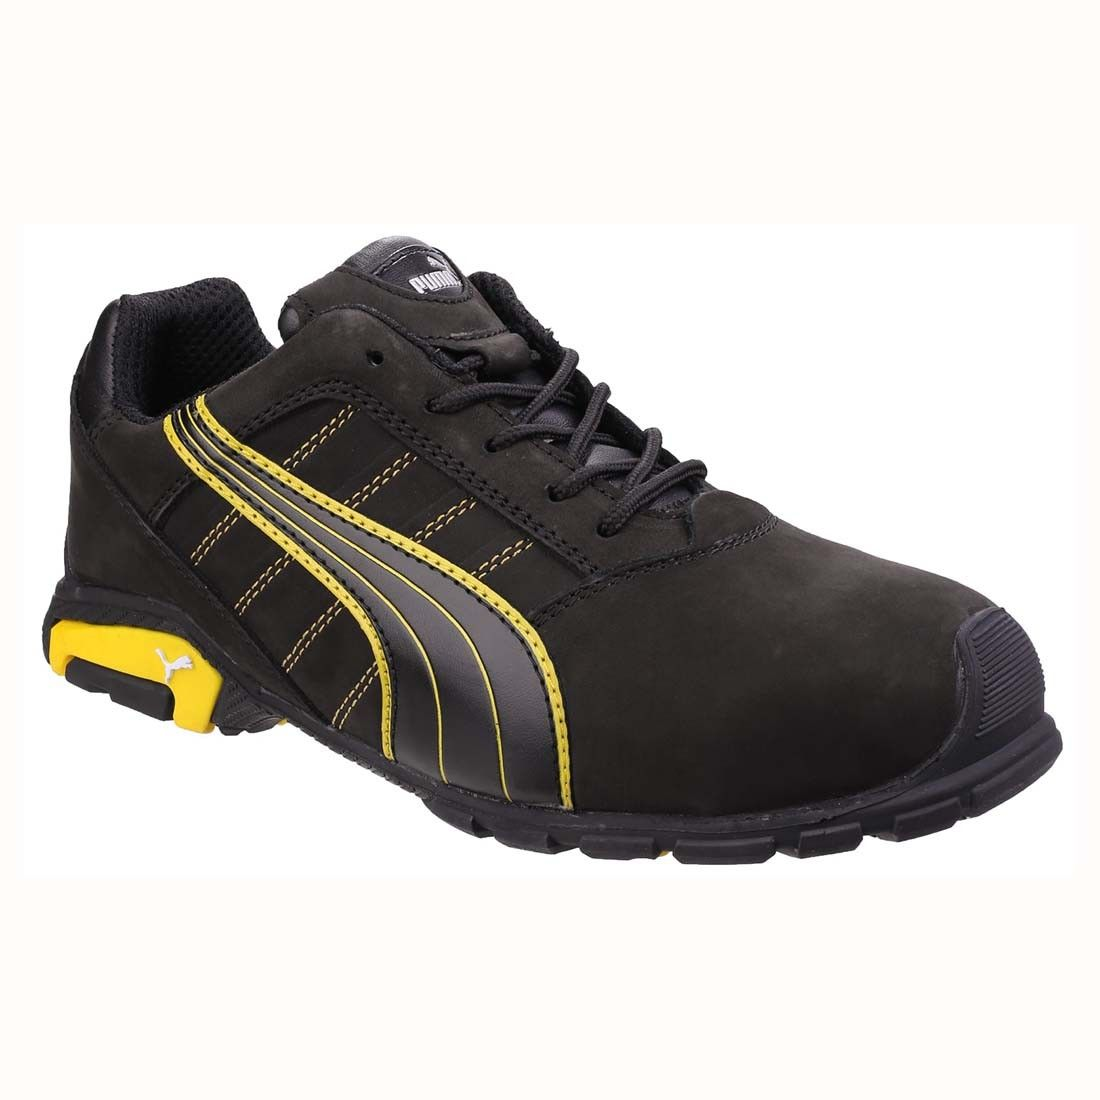 f54295fc309e Puma Amsterdam Low S3 Water Resistant Black Leather Mens Safety Trainers